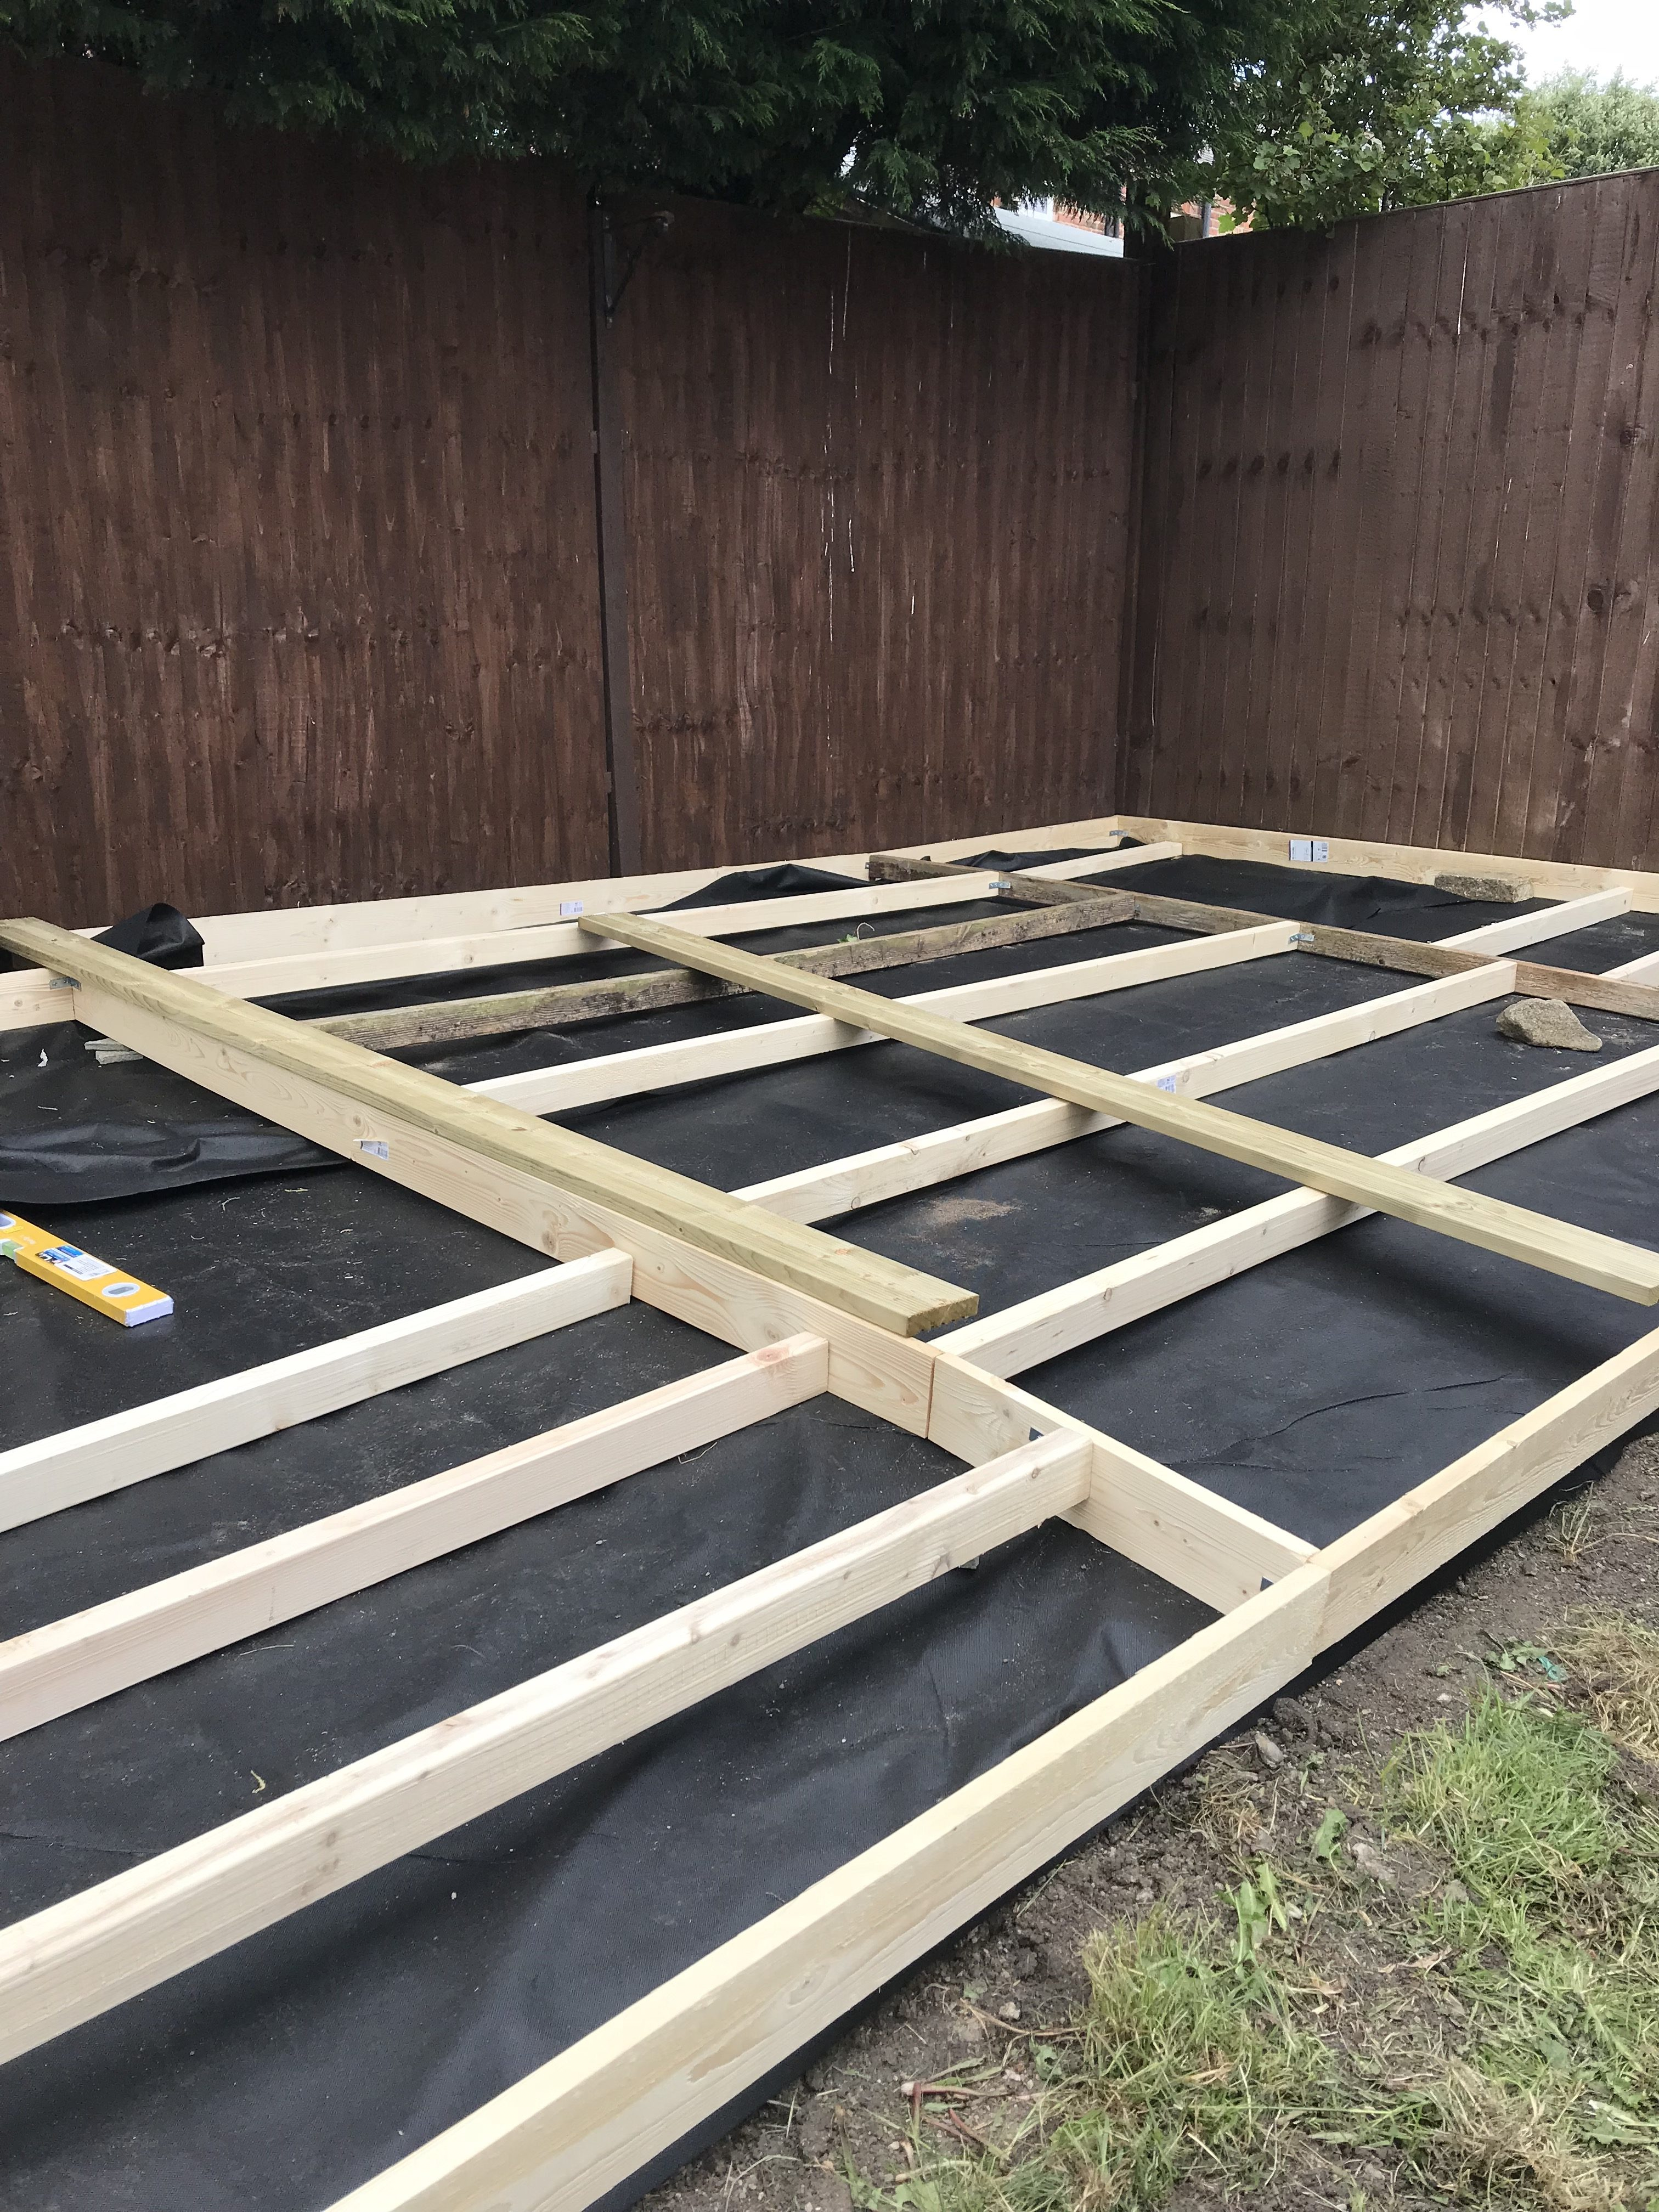 Building Decking | Garden renovation and transformation - styled on Love Island and Ocean Beach Ibiza | DIY Projects and Upcycling | Small garden inspo | Elle Blonde Luxury Lifestyle Destination Blog